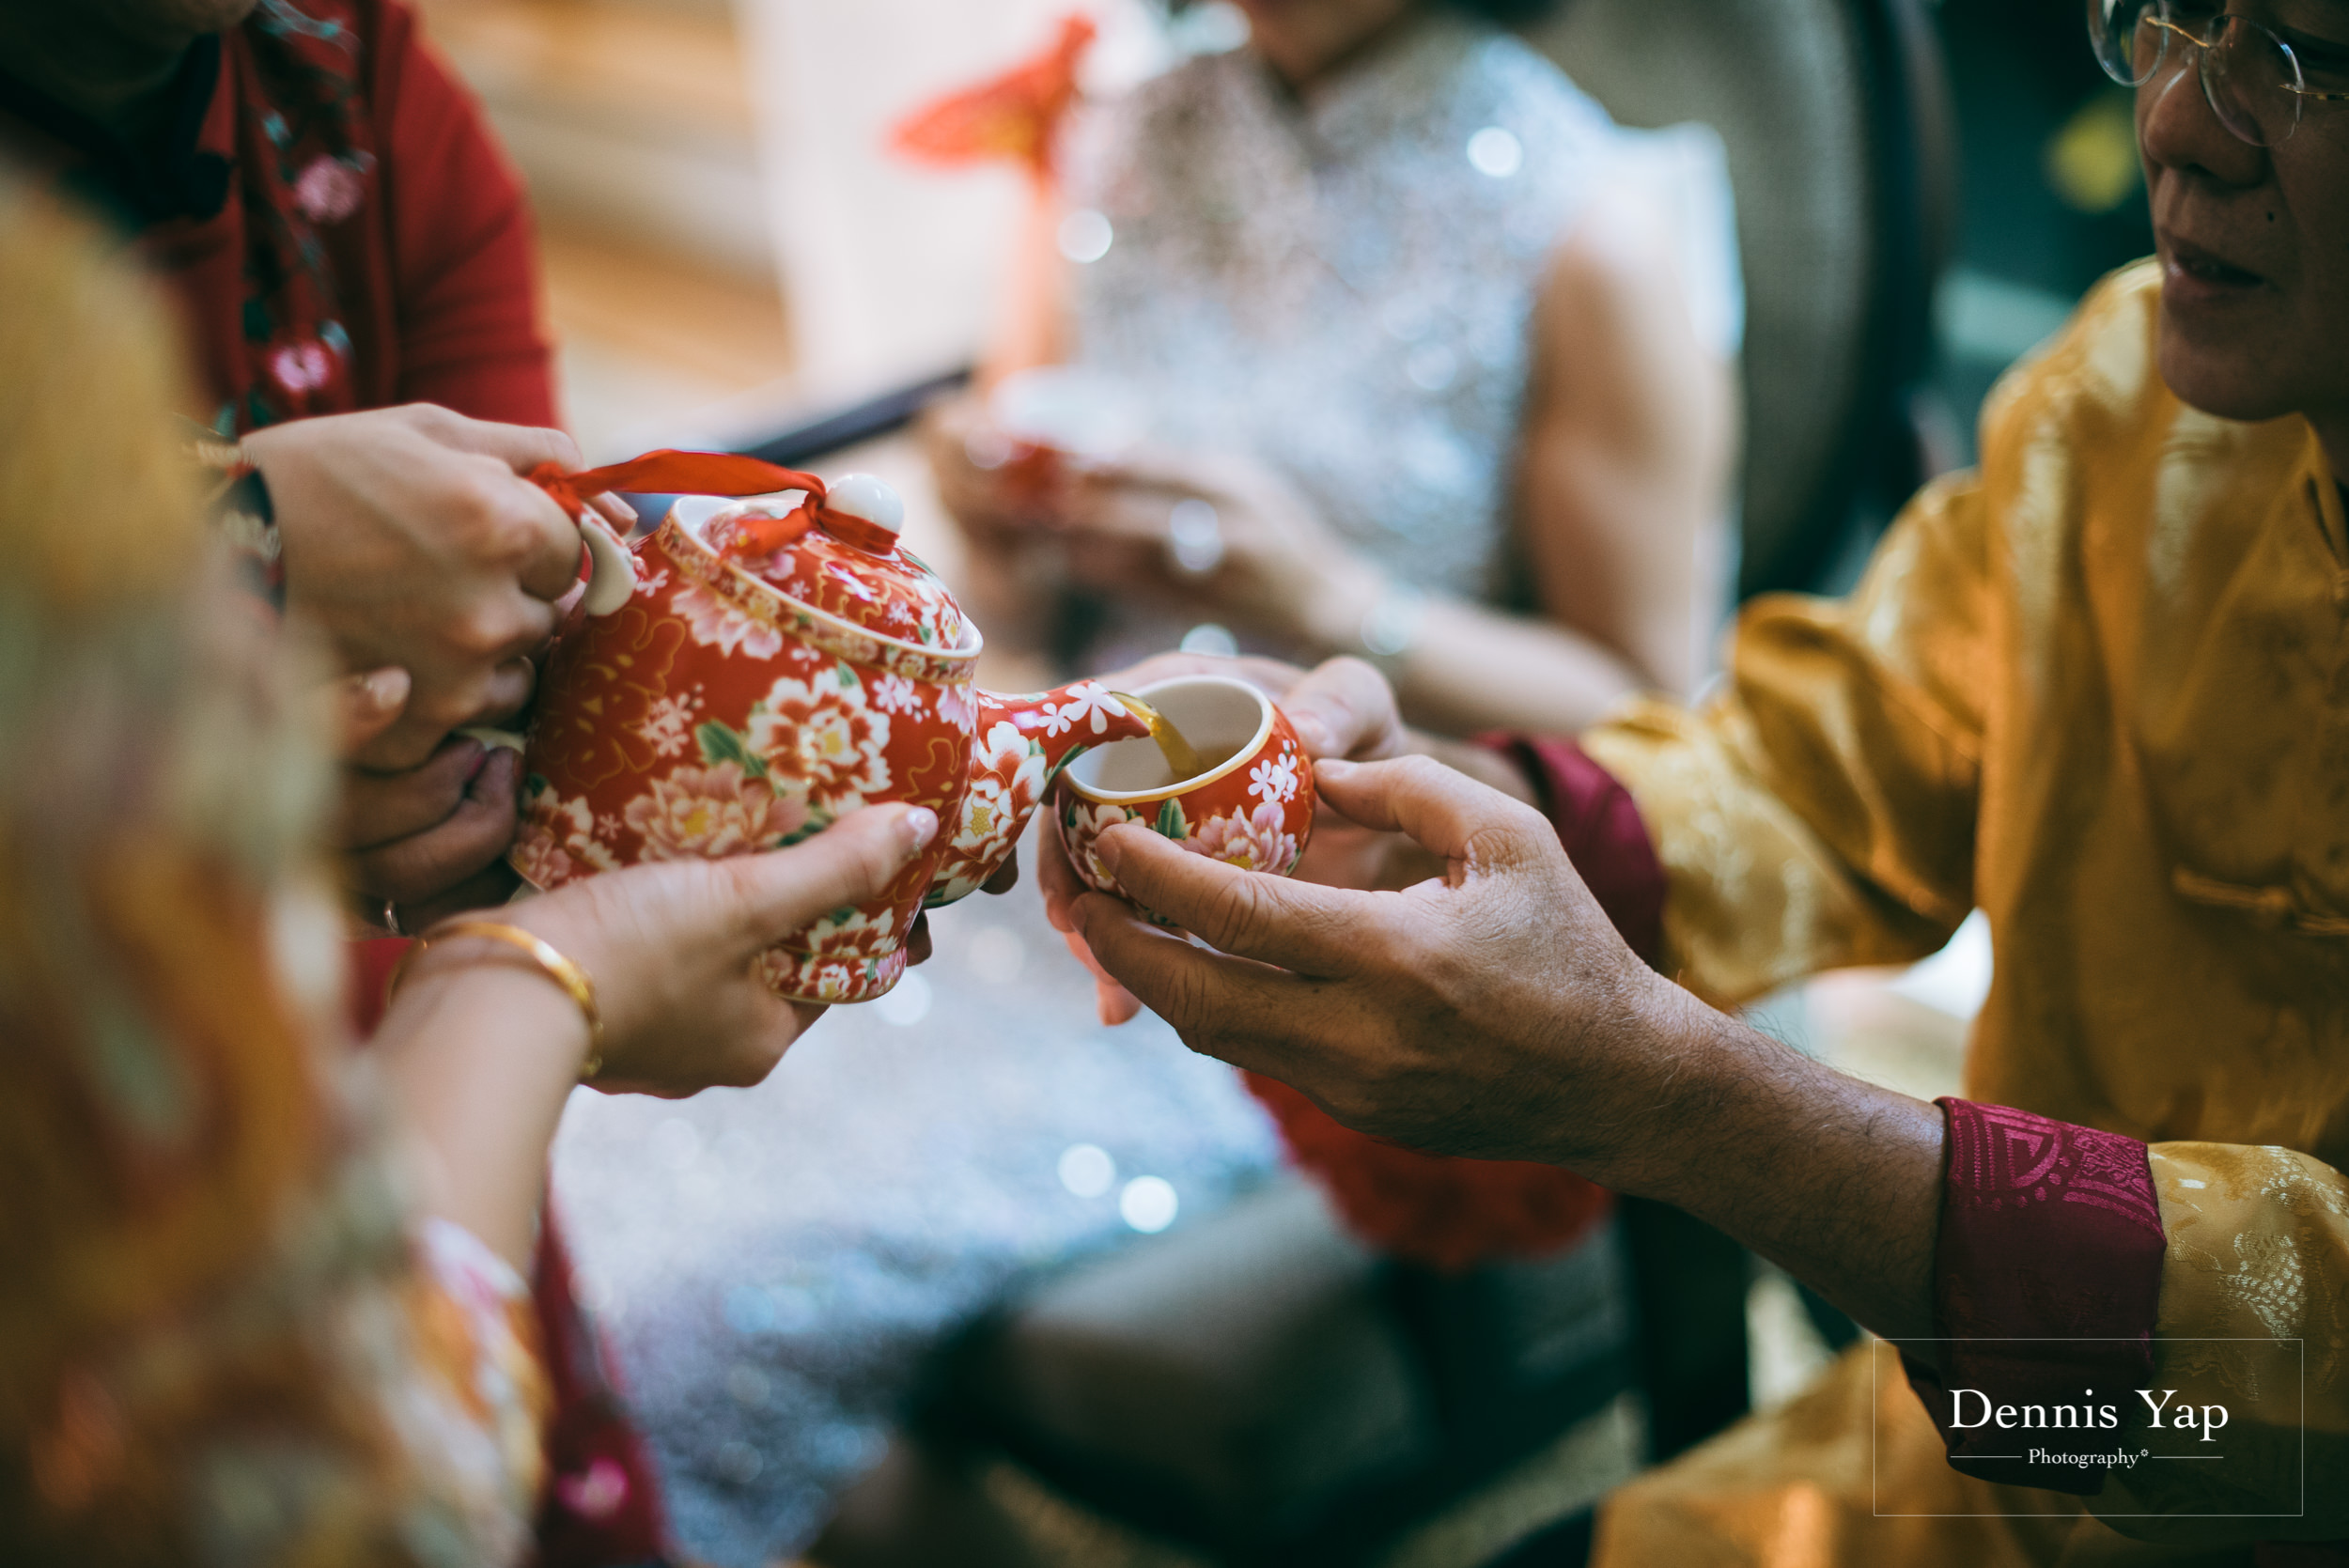 bobby fiona dennis yap photography malaysia wedding photographer chinese traditional-81.jpg